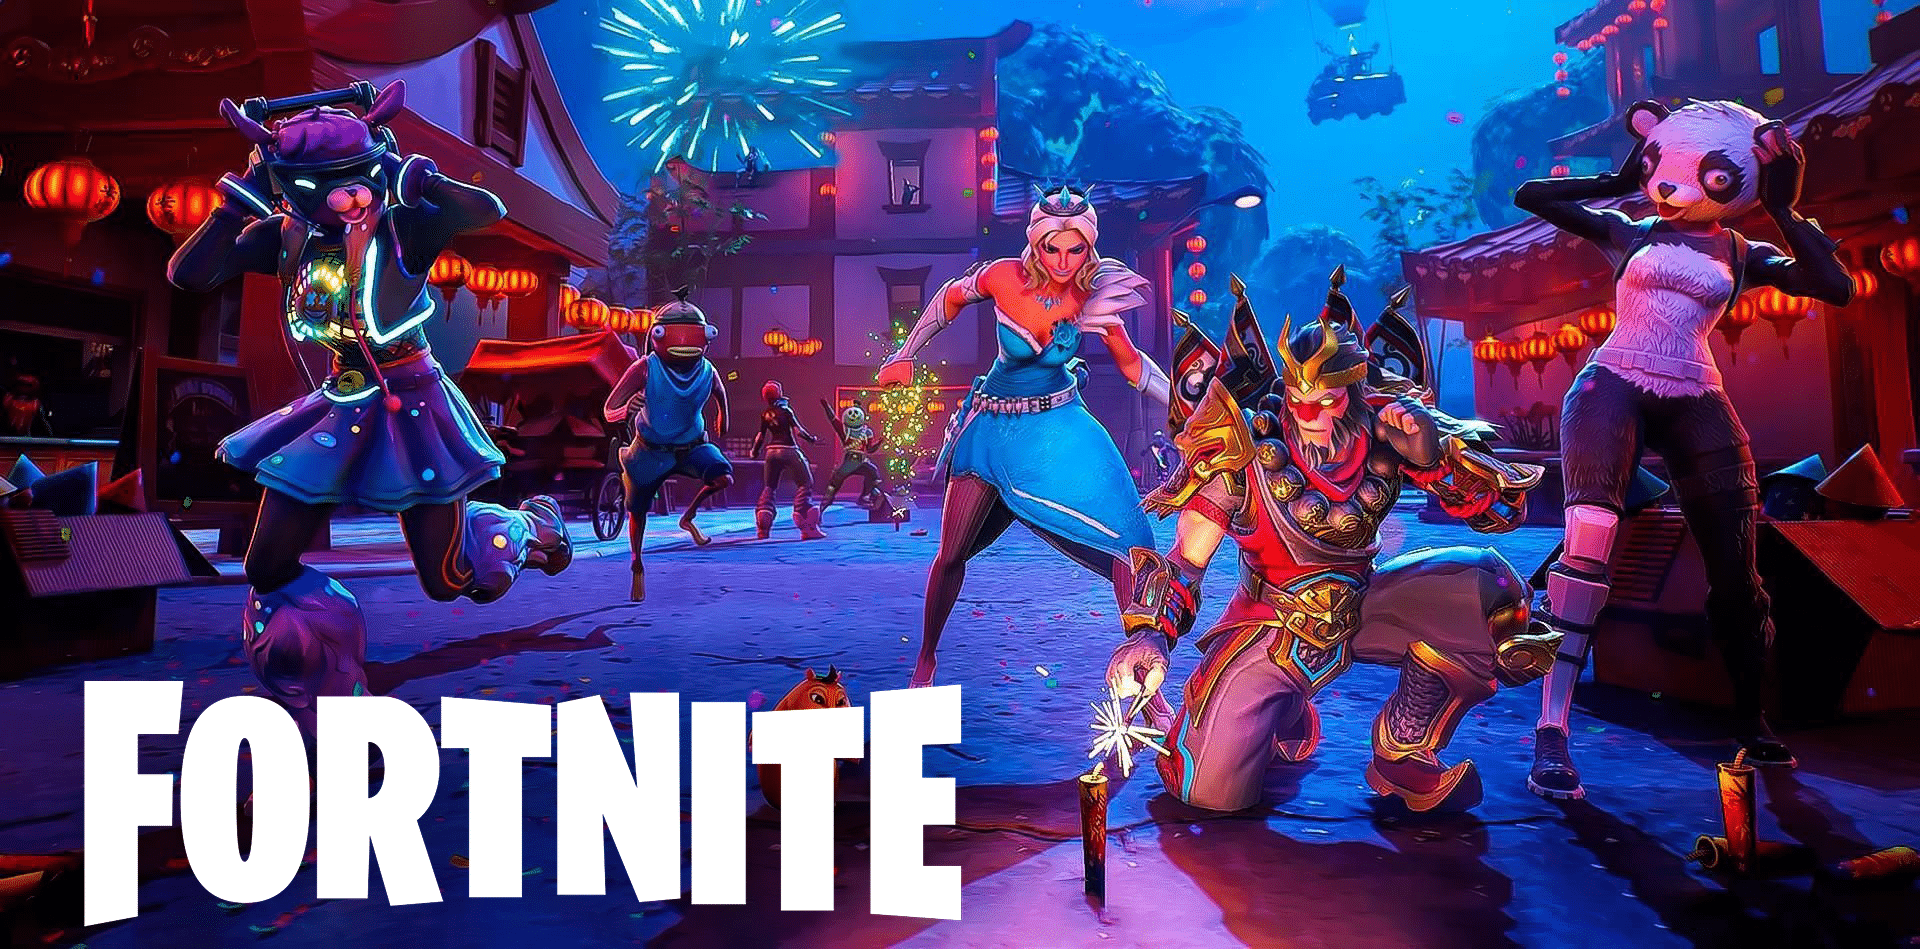 Fortnite New Year S Eve 2021 Event Has Been Leaked Charlie Intel That's the question we're going to to answer in this post. charlie intel